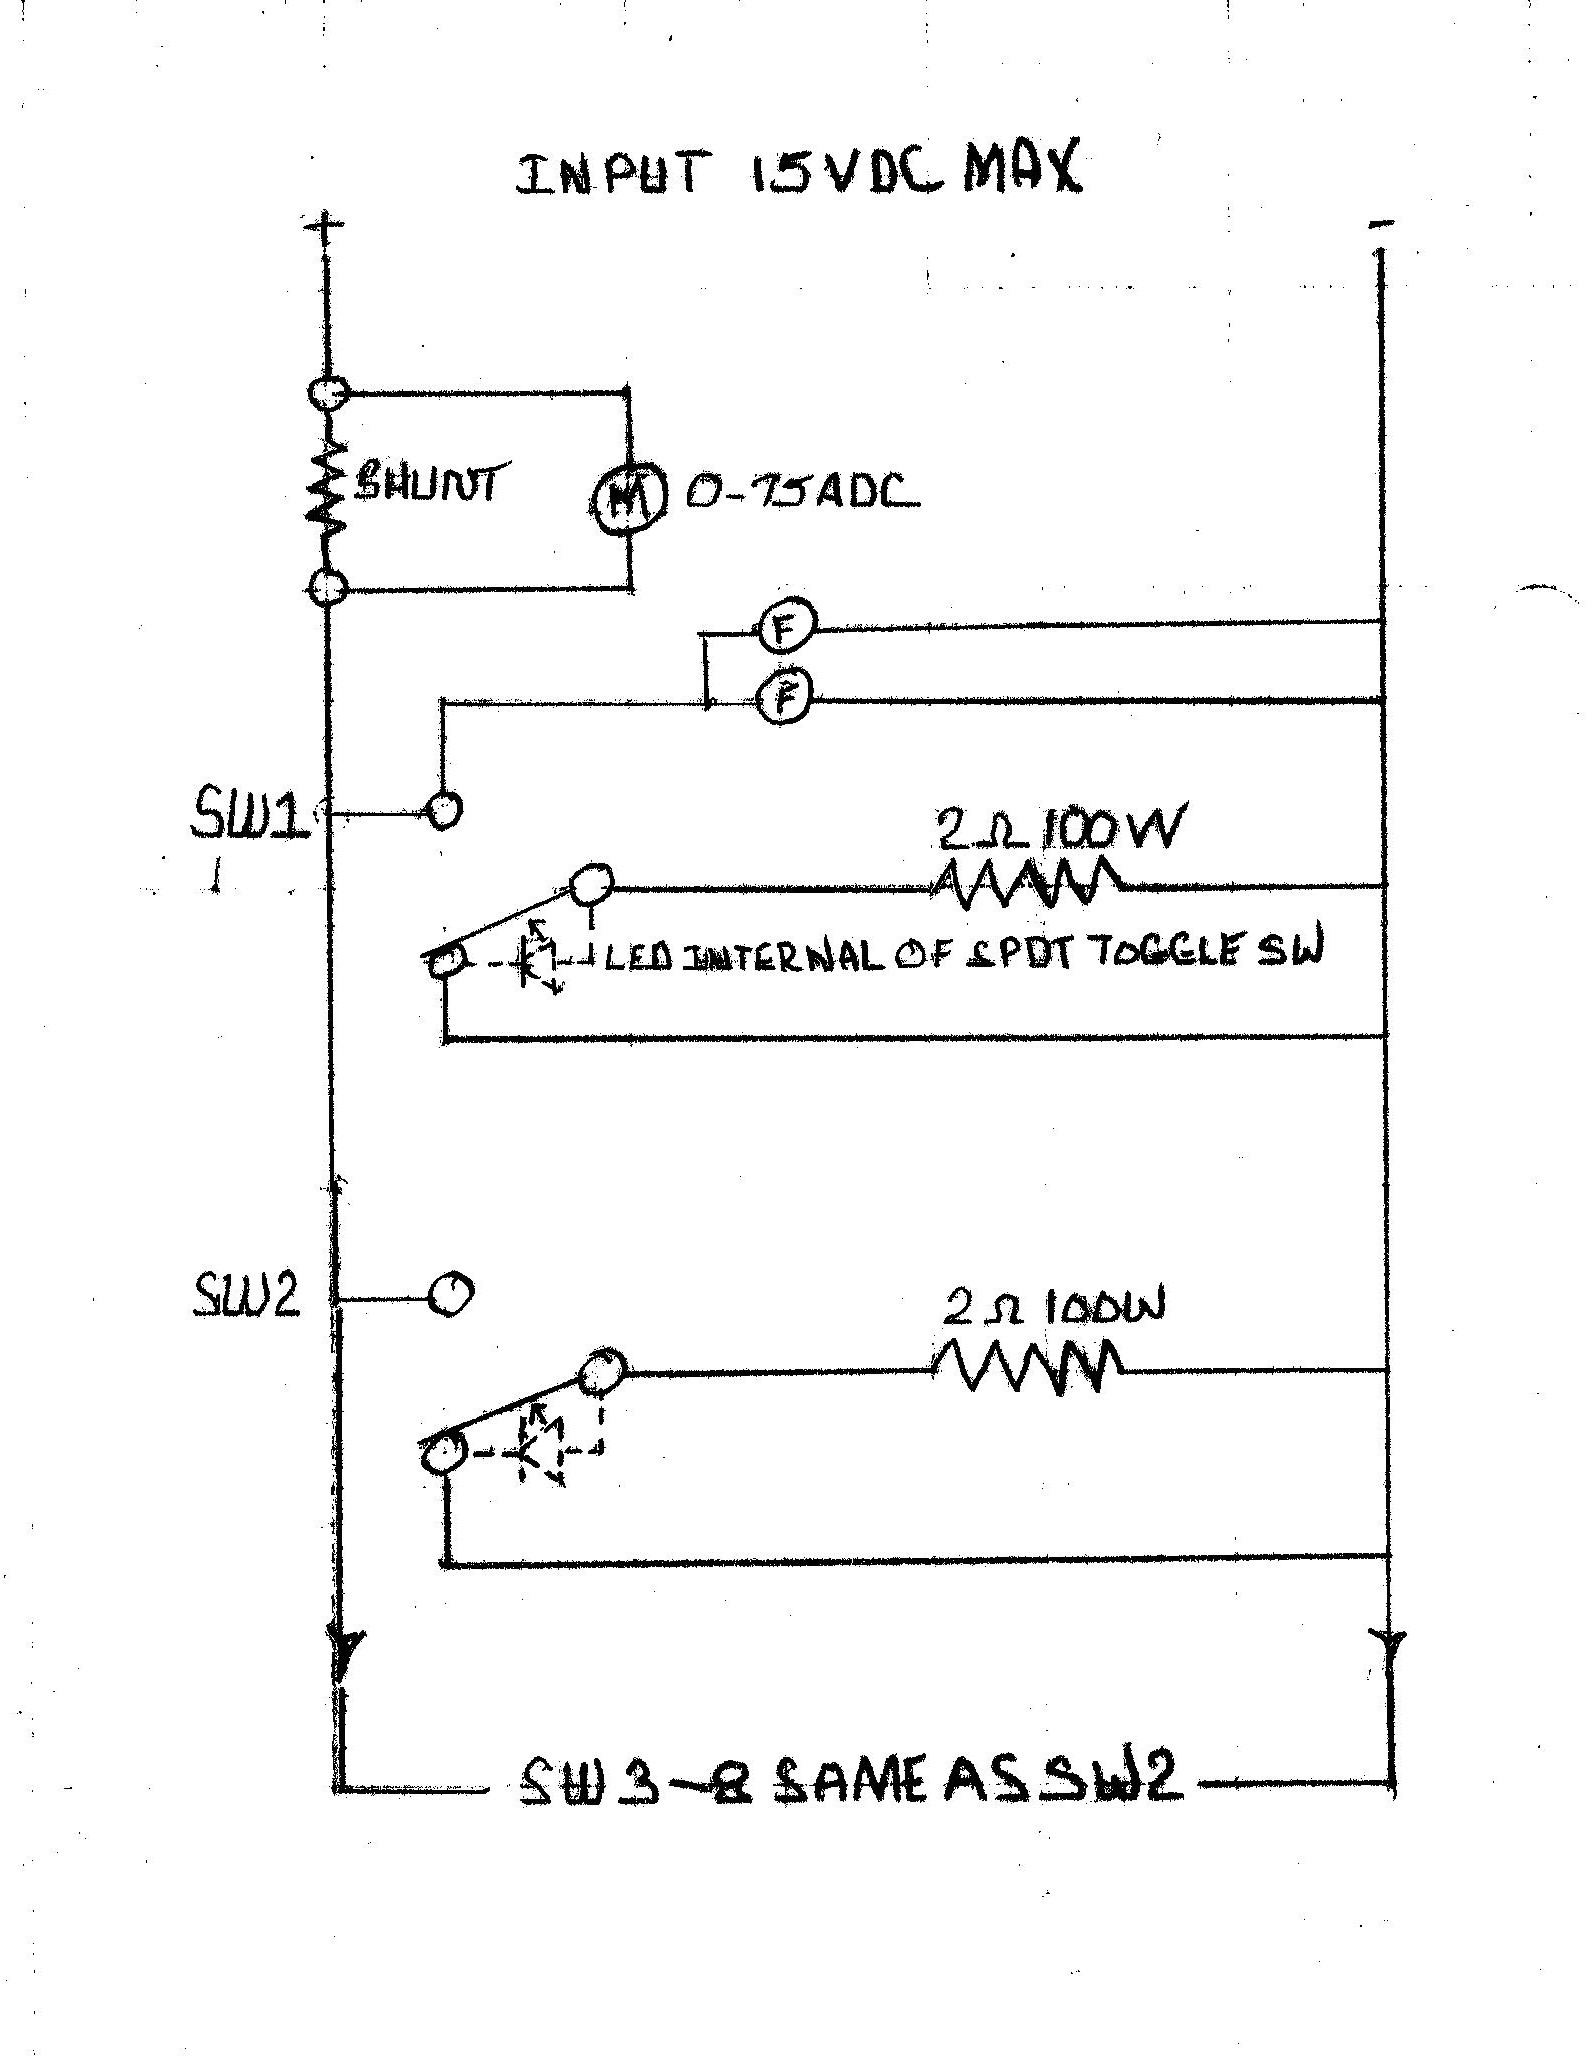 Power Supply Load on astron capacitors, astron rs-35a schematic, antenna tuner schematic, balun schematic, astron 50 schematic, cde ham 3 schematic, astron rs-12a schematic, astron 35m board,